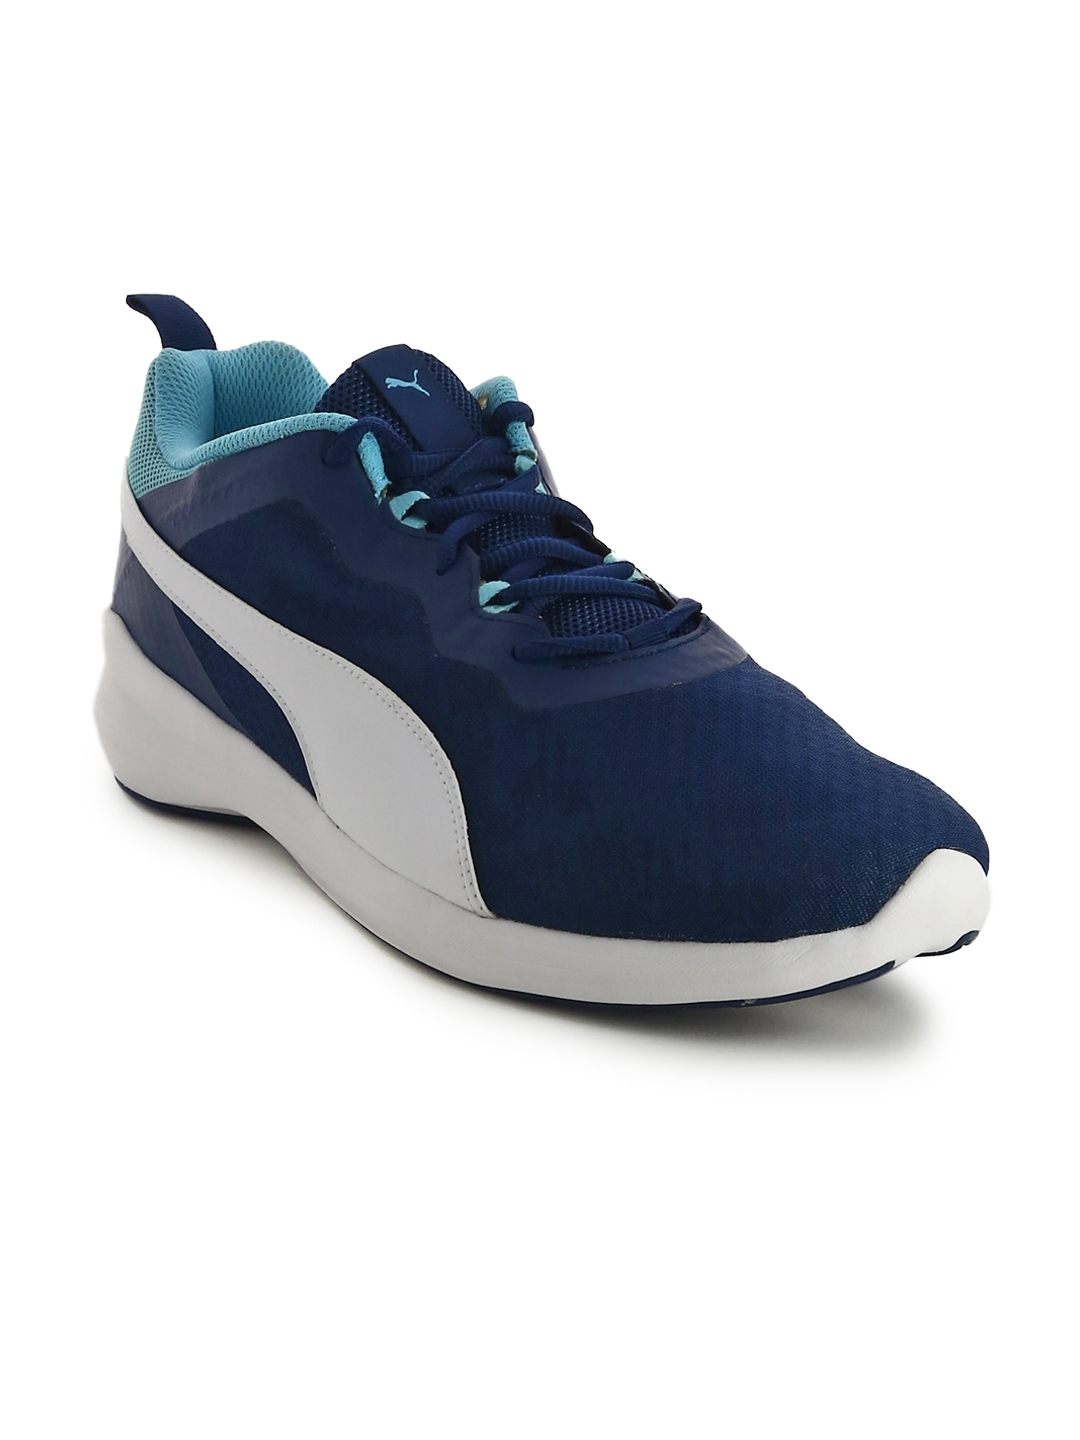 Buy Puma Men Blue Pacer Evo Running Shoes - Sports Shoes for Men ... 3719a0888